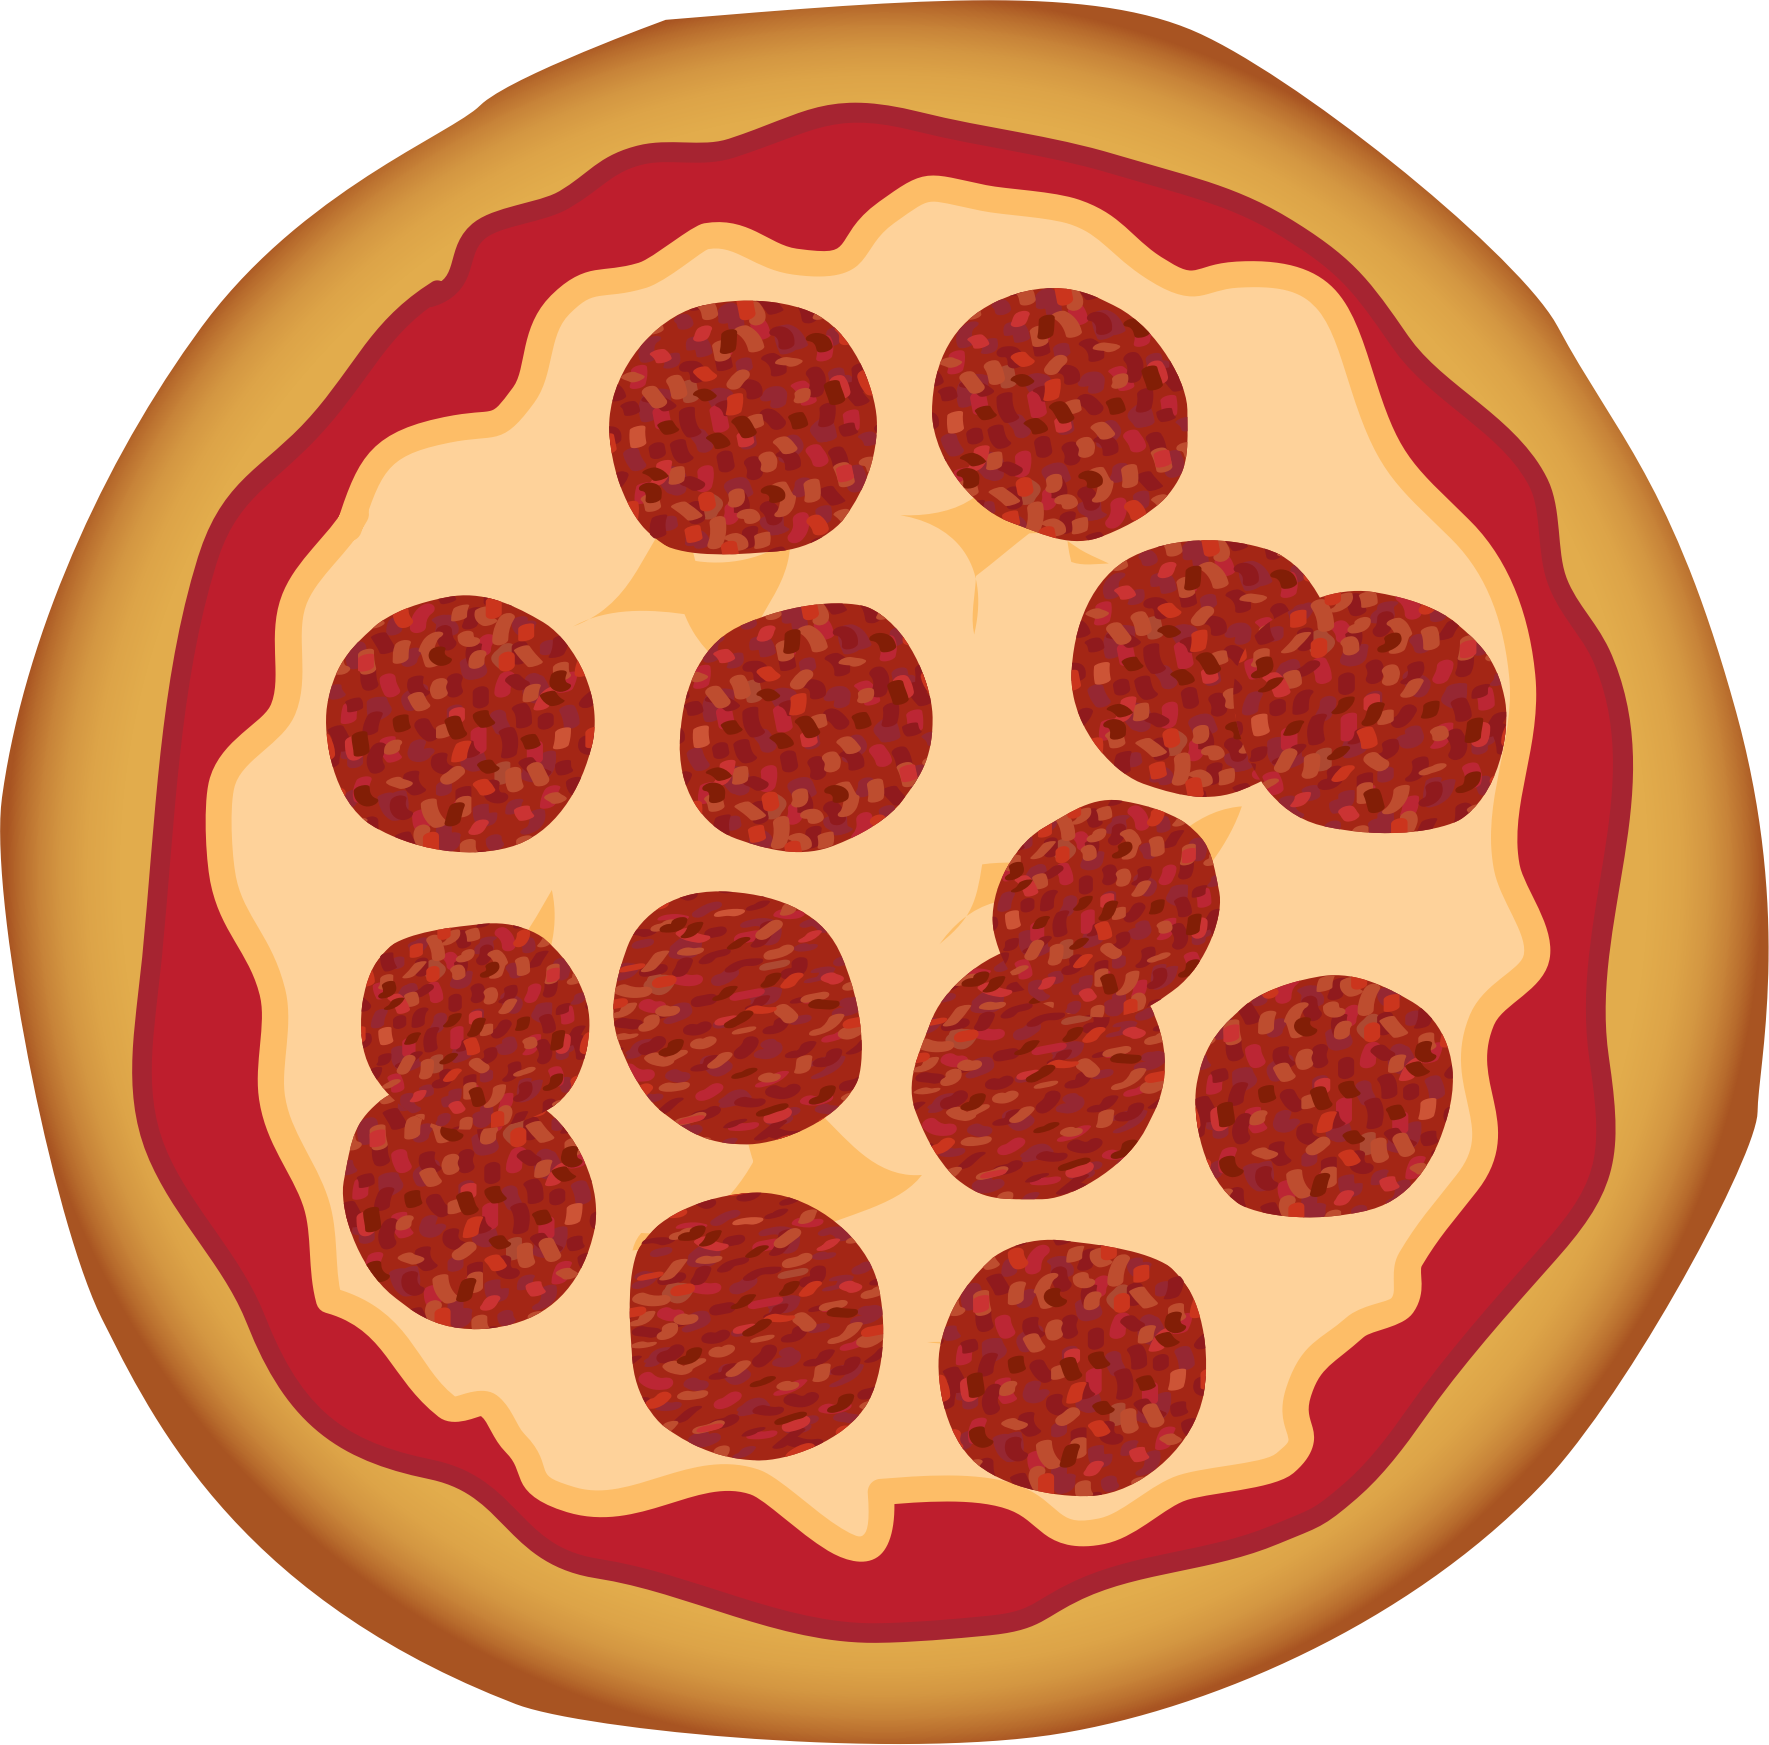 Pepperoni Pizza by toons4biz